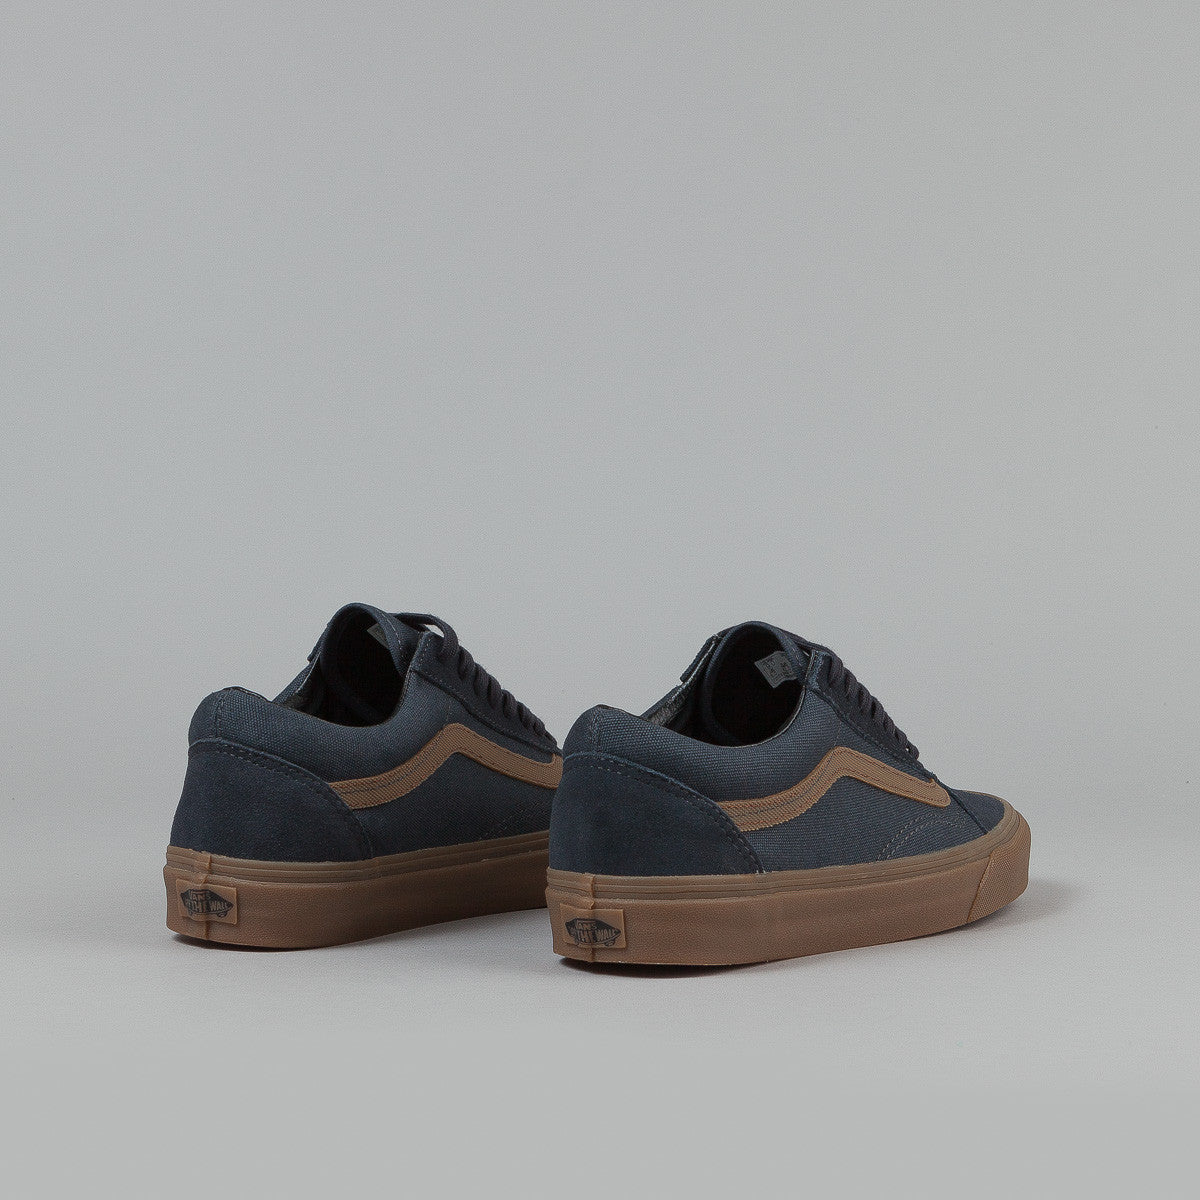 Vans Old Skool Shoes (Gum Sidestripe) - Ebony